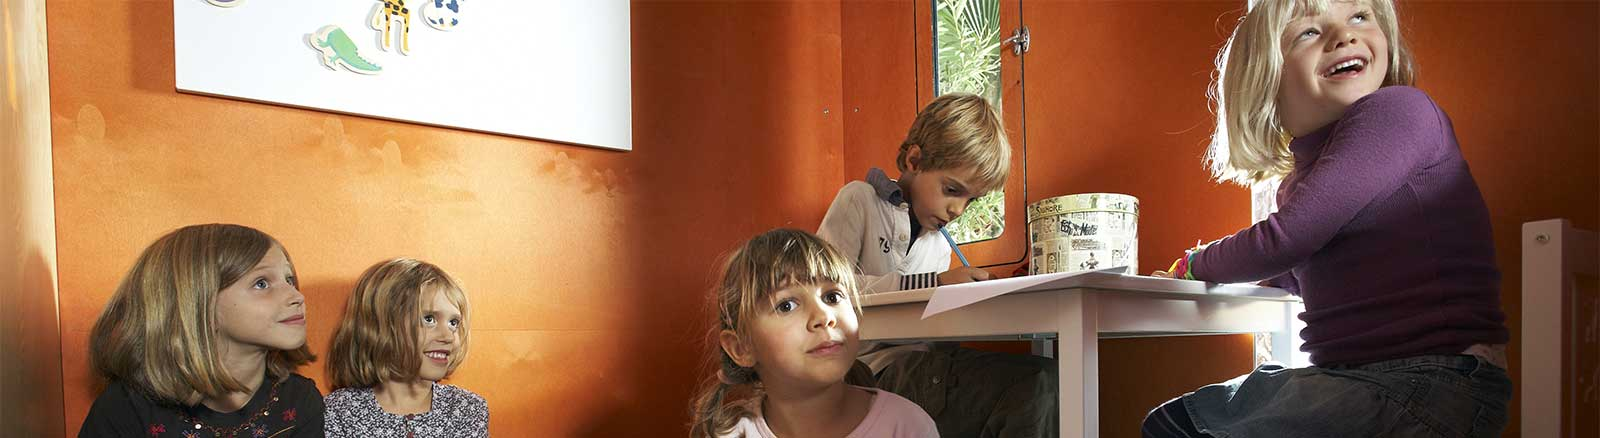 playhouse safety and assembly